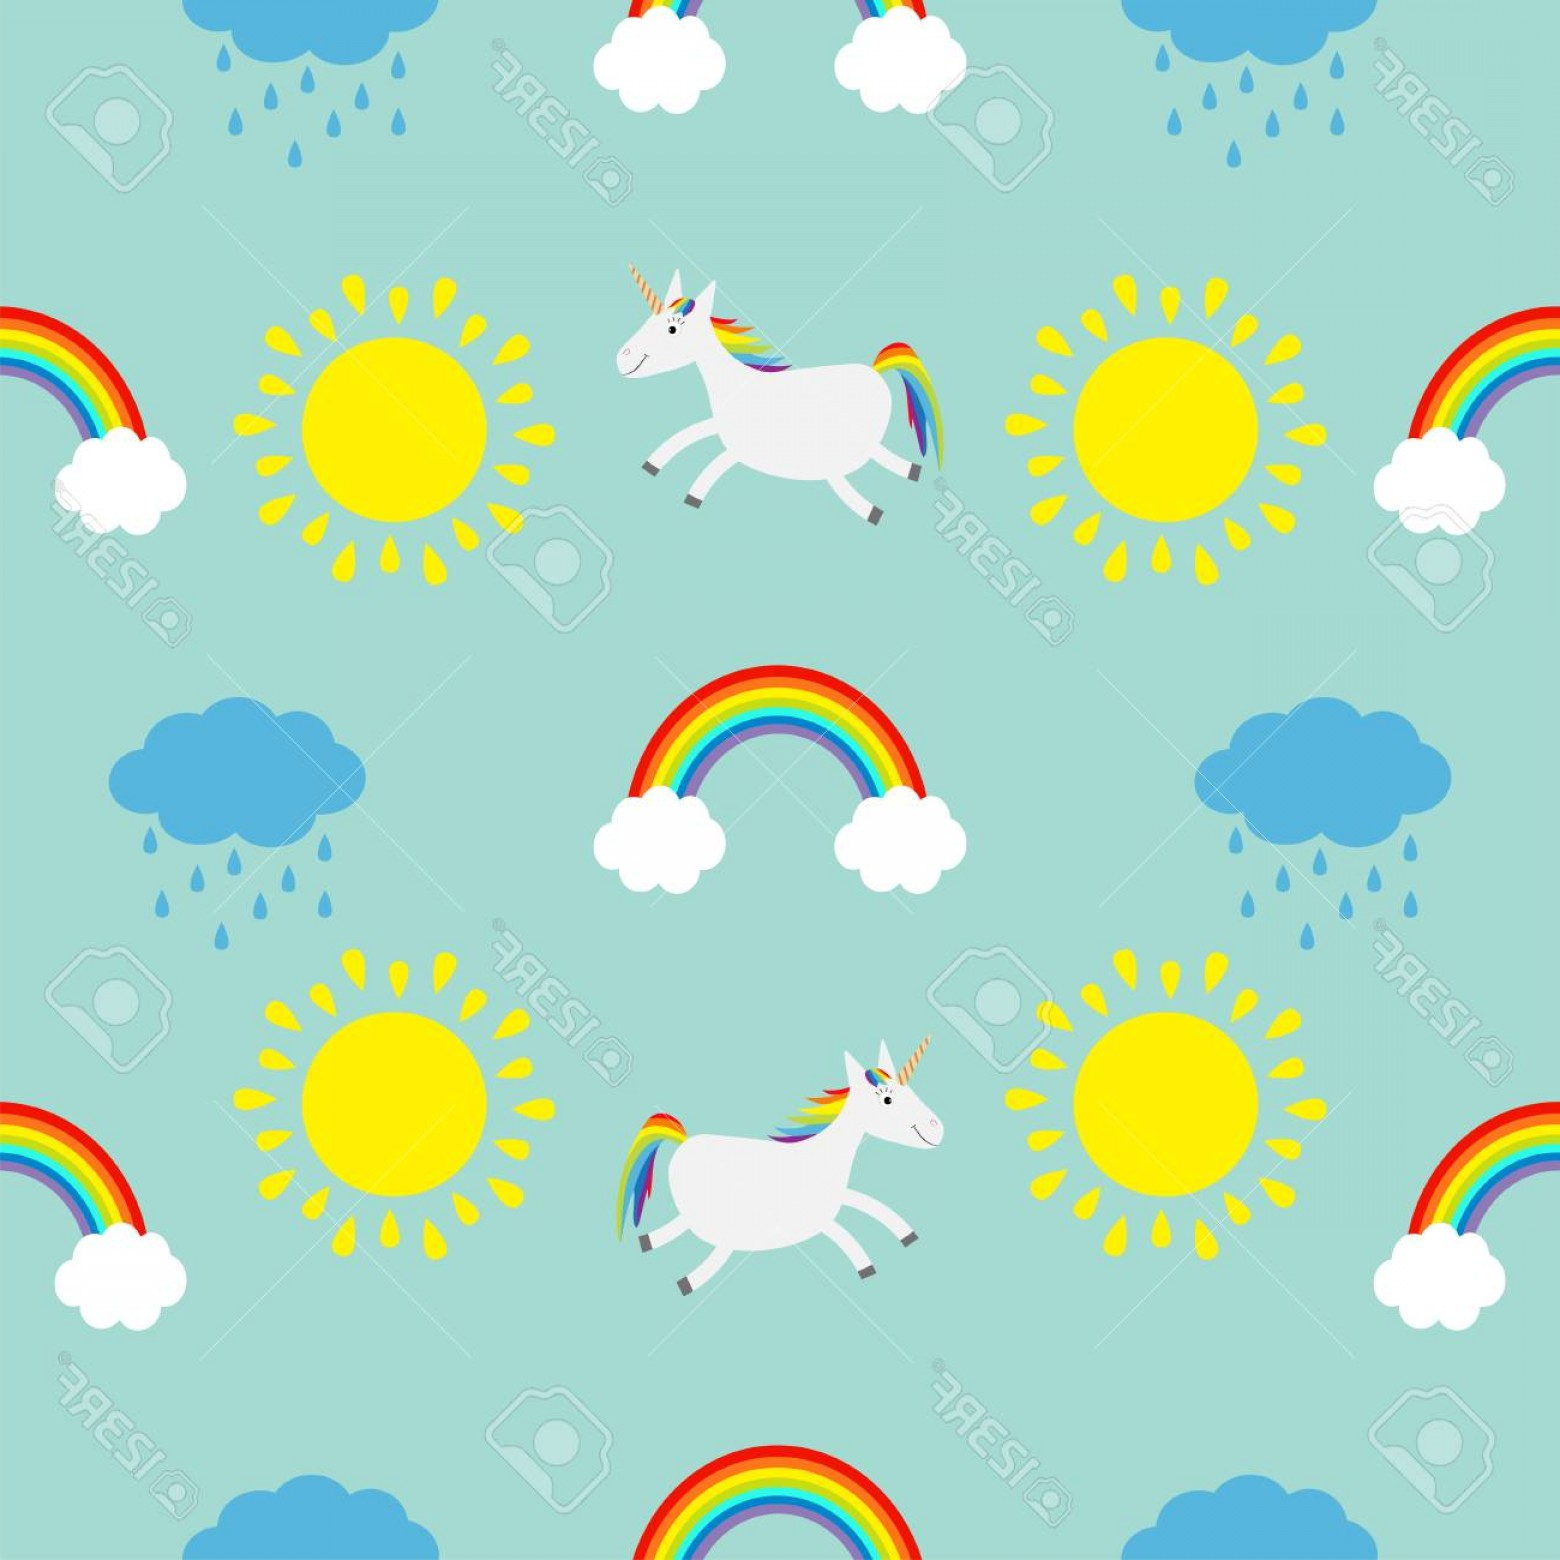 Blue Background Vector Cartoon Sun: Photostock Vector Cute Cartoon Sun Cloud With Rain Rainbow Unicorn Horse Set Baby Seamless Pattern Wrapping Paper Text